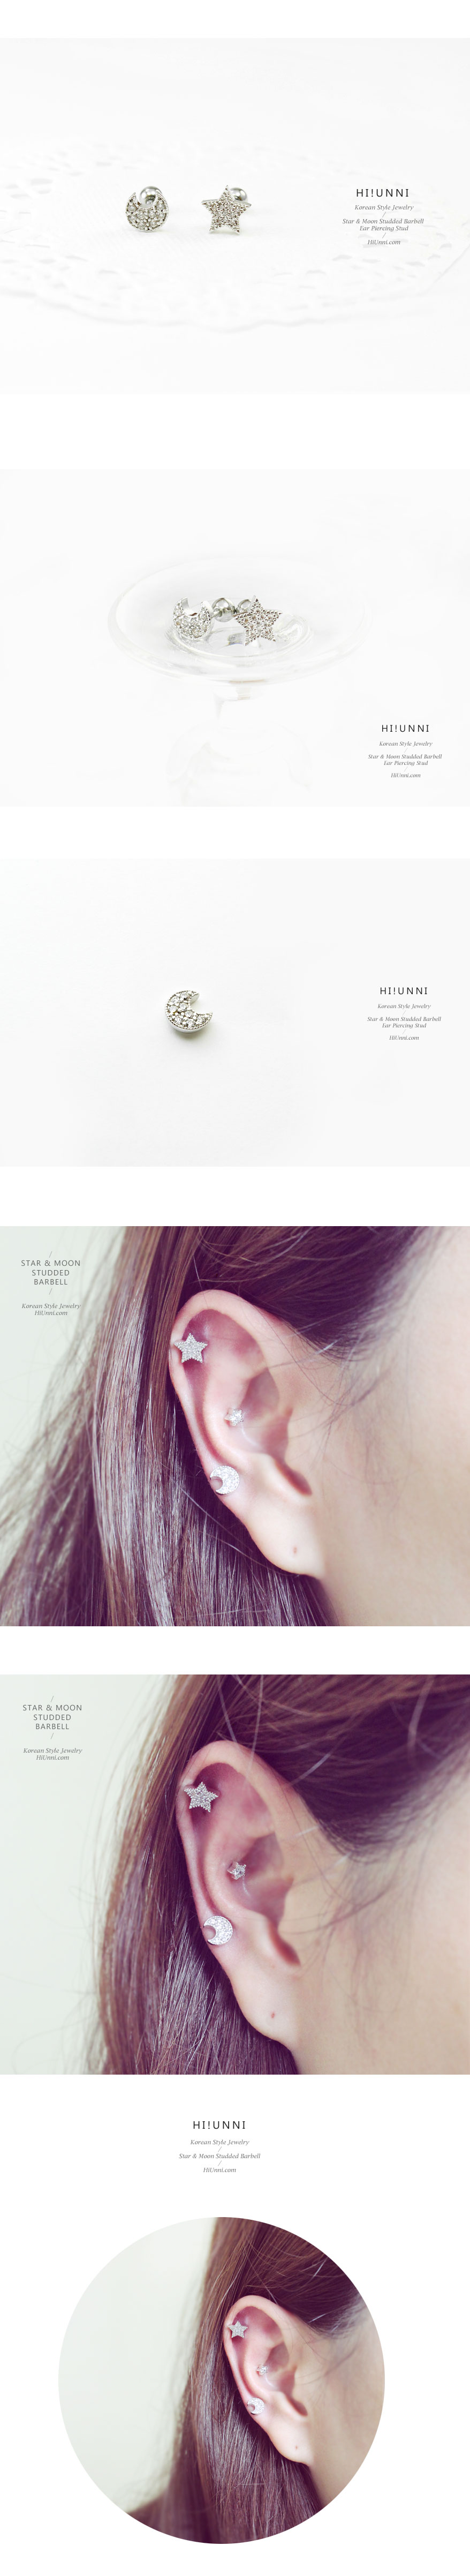 ear_studs_piercing_Cartilage_earrings_16g_316l_Surgical_Stainless_Steel_korean_asian_style_jewelry_barbell_cubic_zirconia_star_moon_4